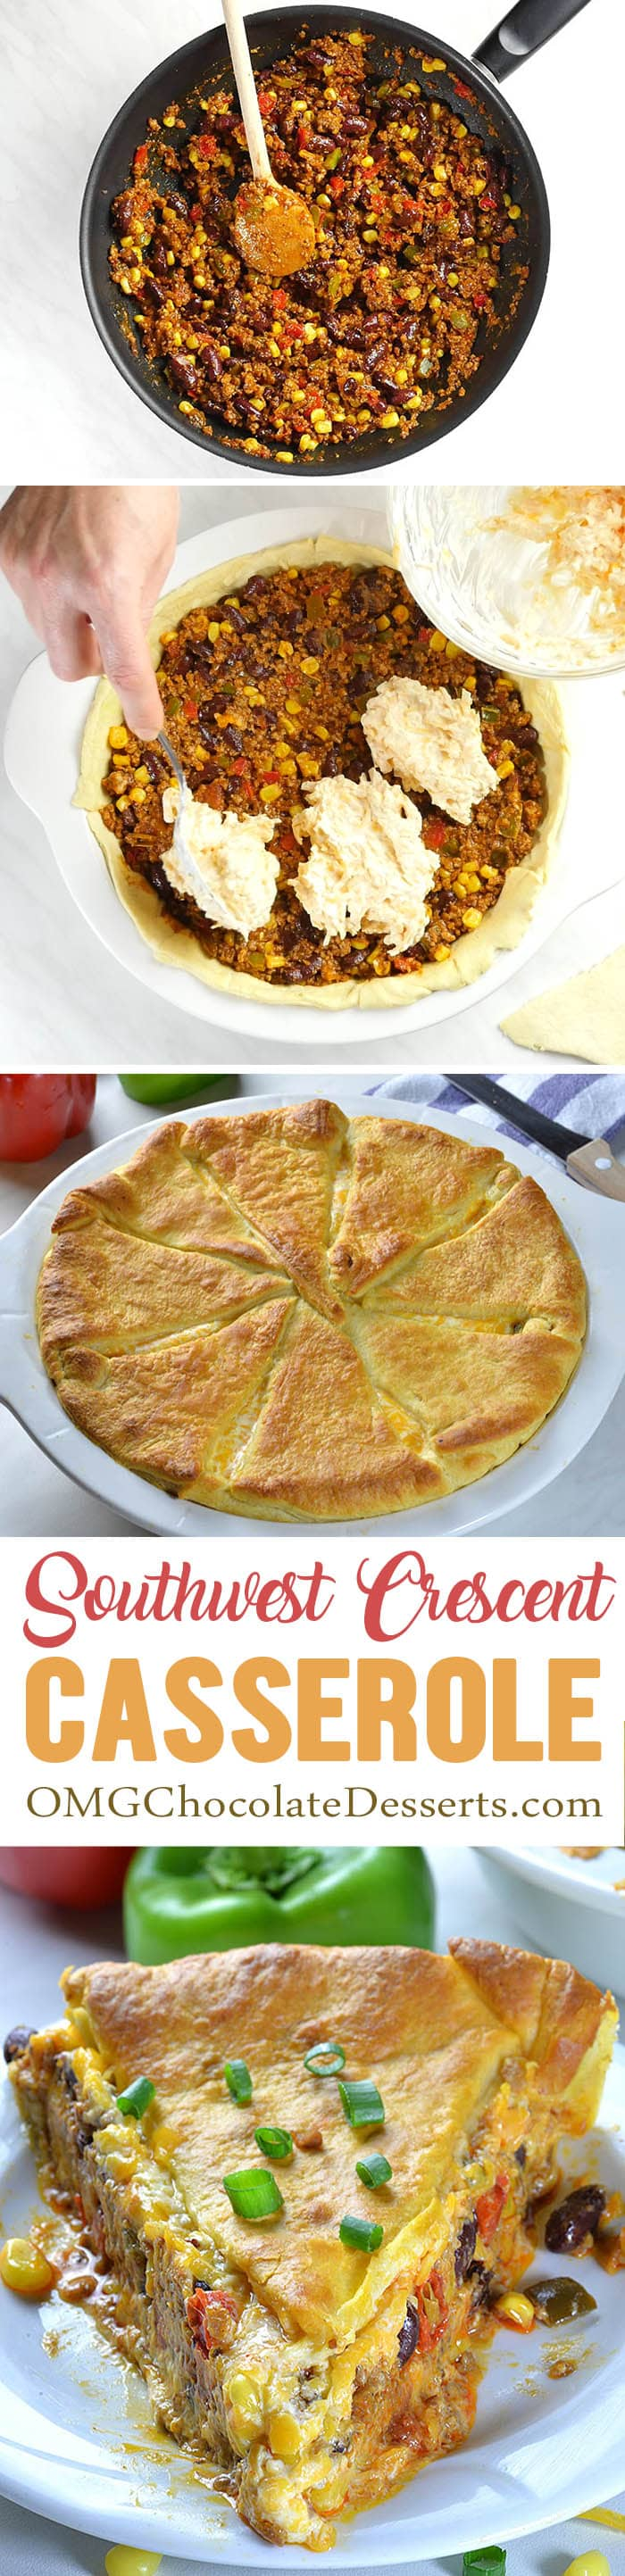 Southwest Crescent Casserole is meal-in-one. It has meat and veggies, and that's all packed in one delicious dish.